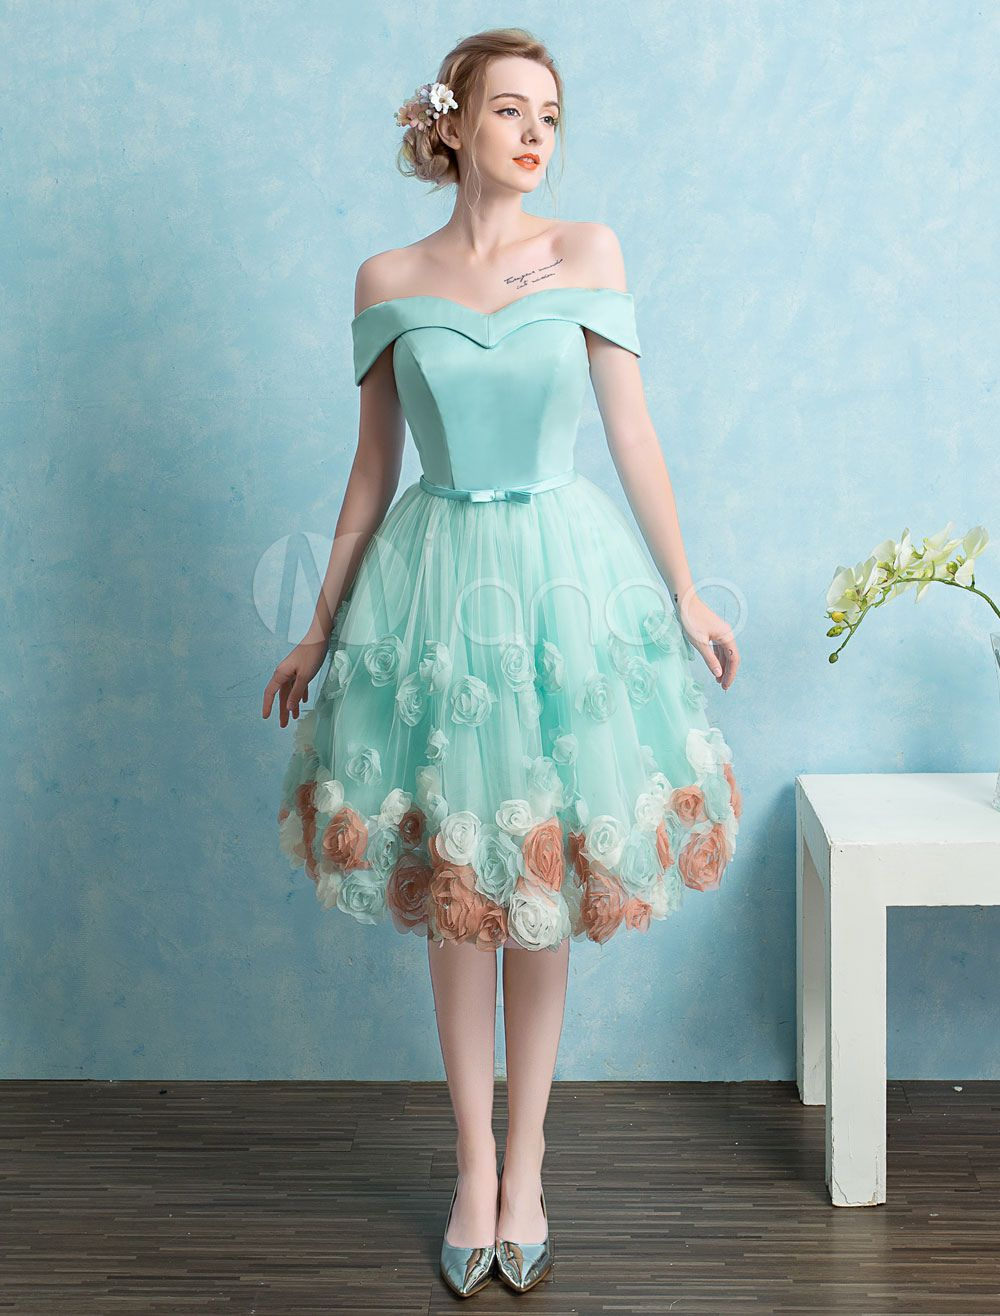 01bbcdf0117 White Prom Dresses 2018 Short Off The Shoulder Prom Dress Tulle 3D Flower A  Line Knee Length Homecoming Dress With Detachable Cape  Short